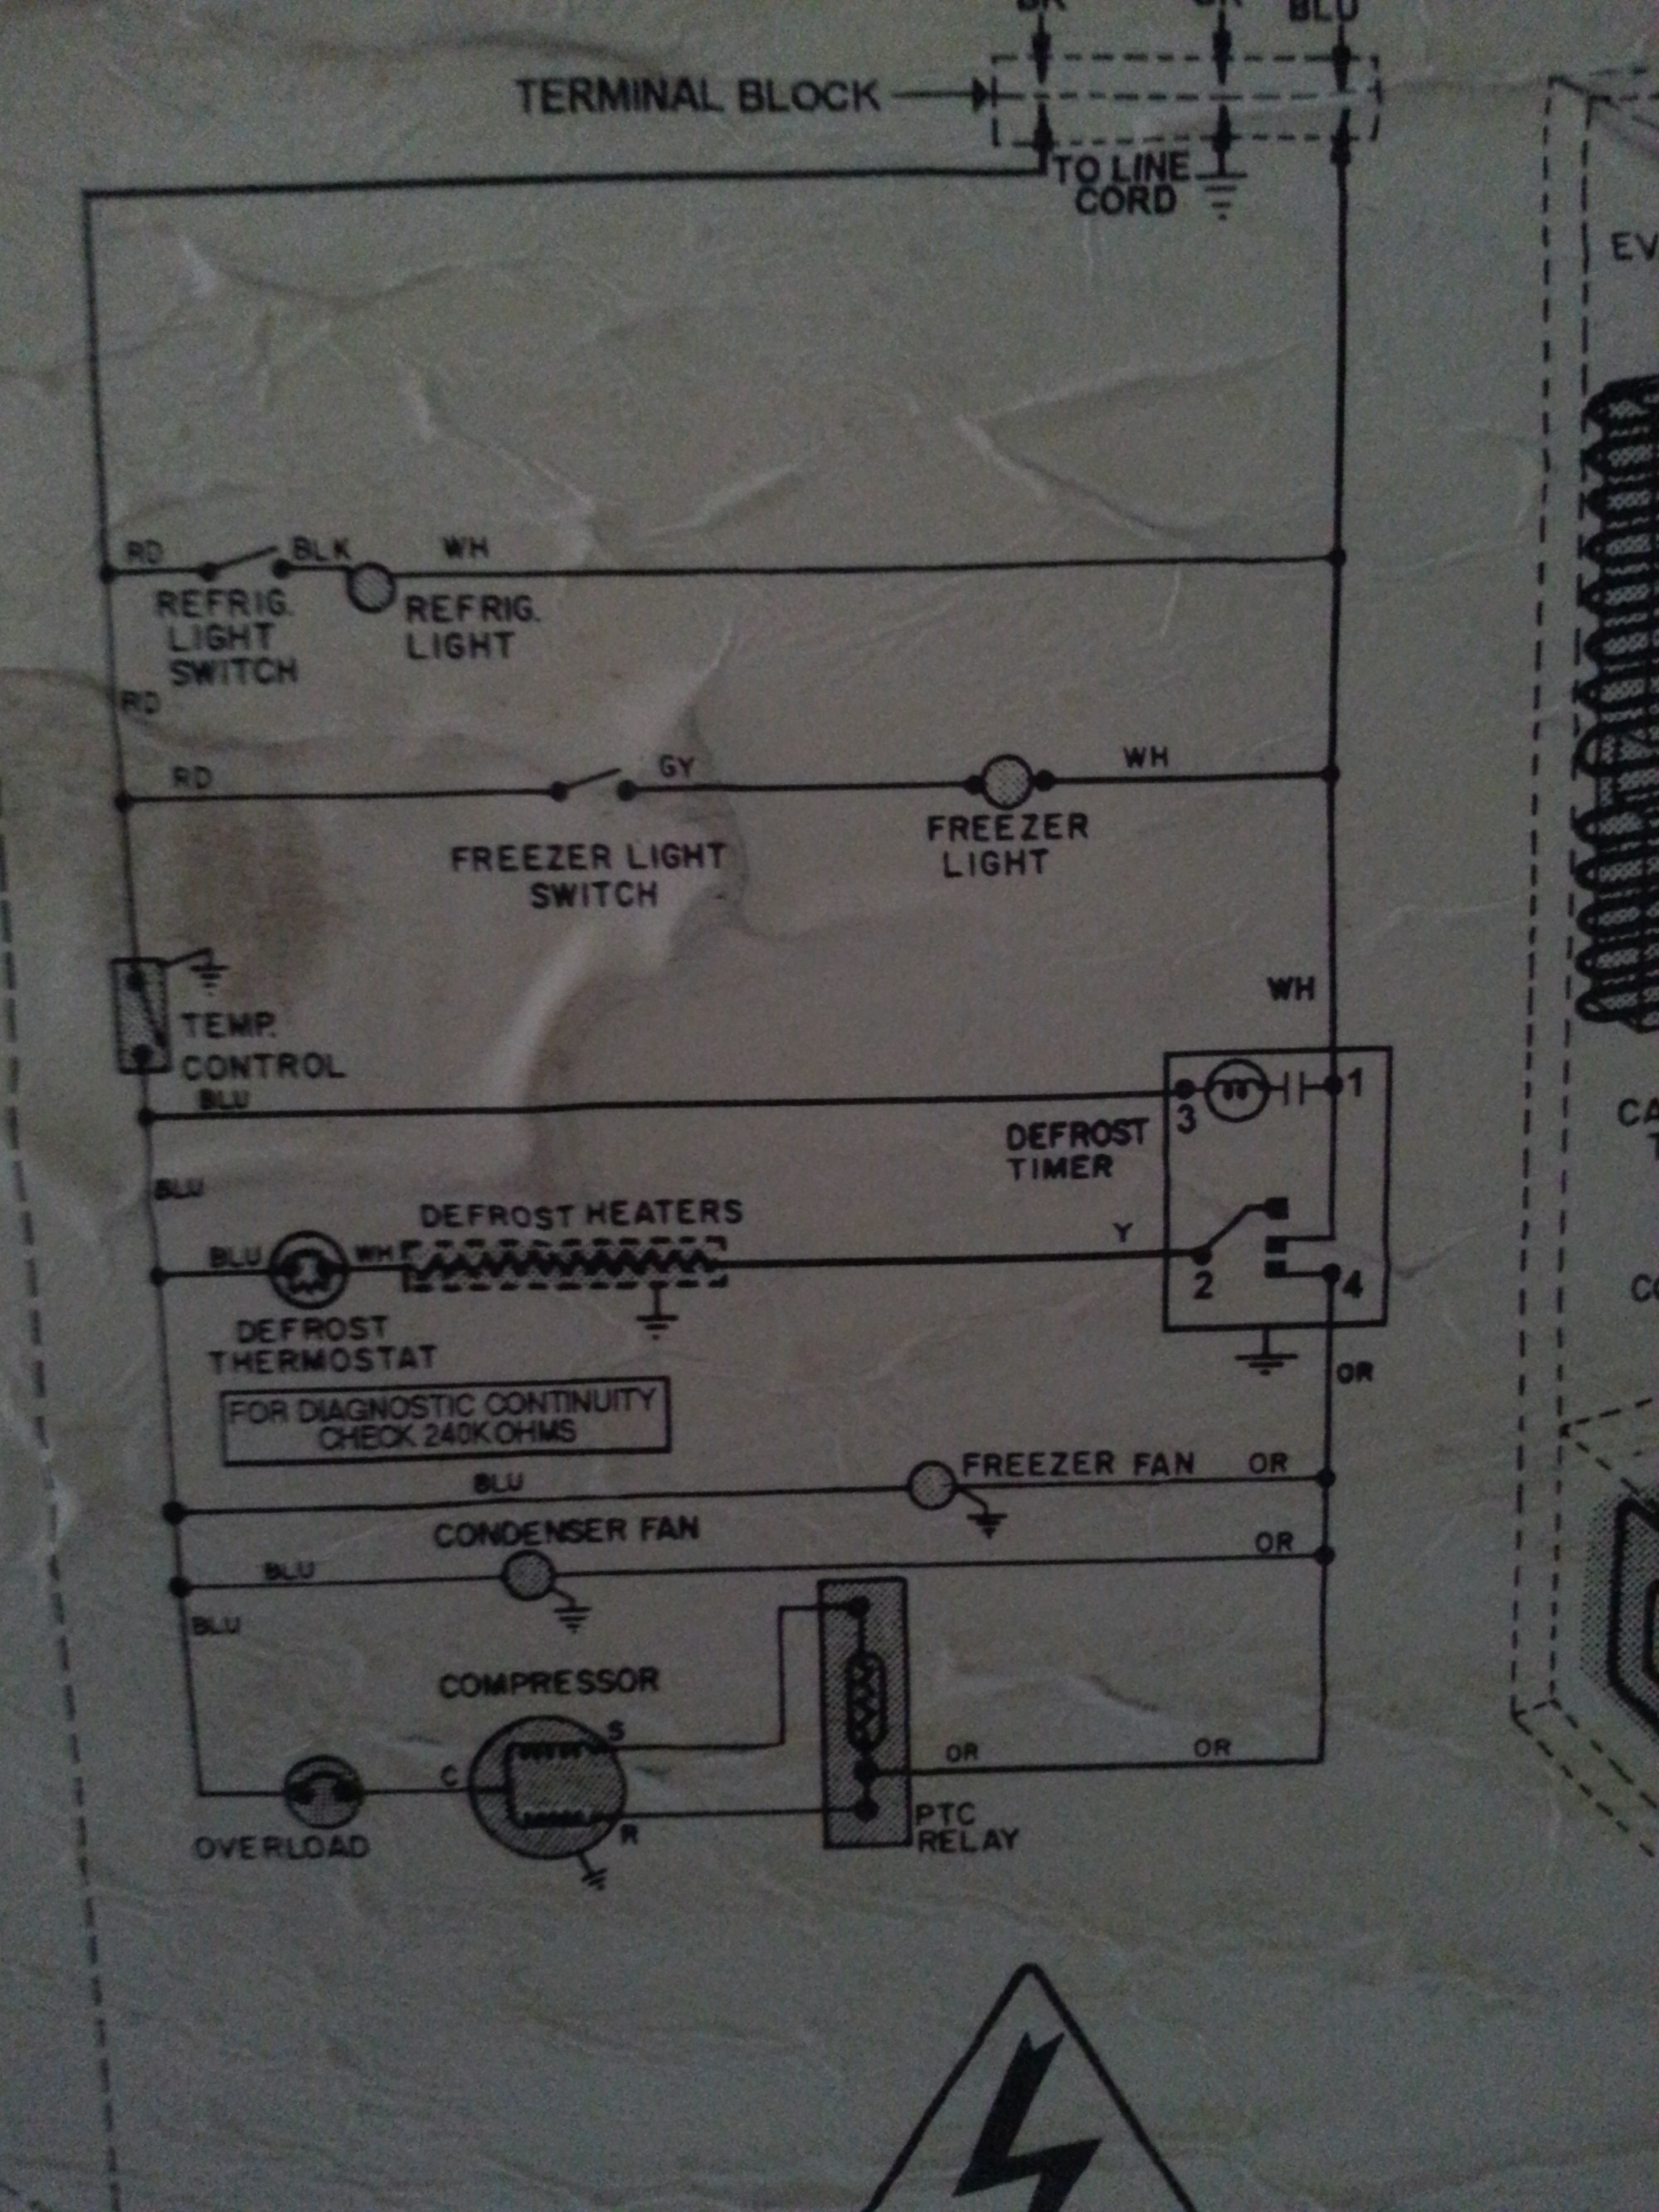 hight resolution of photo of the wiring schematic on the back of the unit